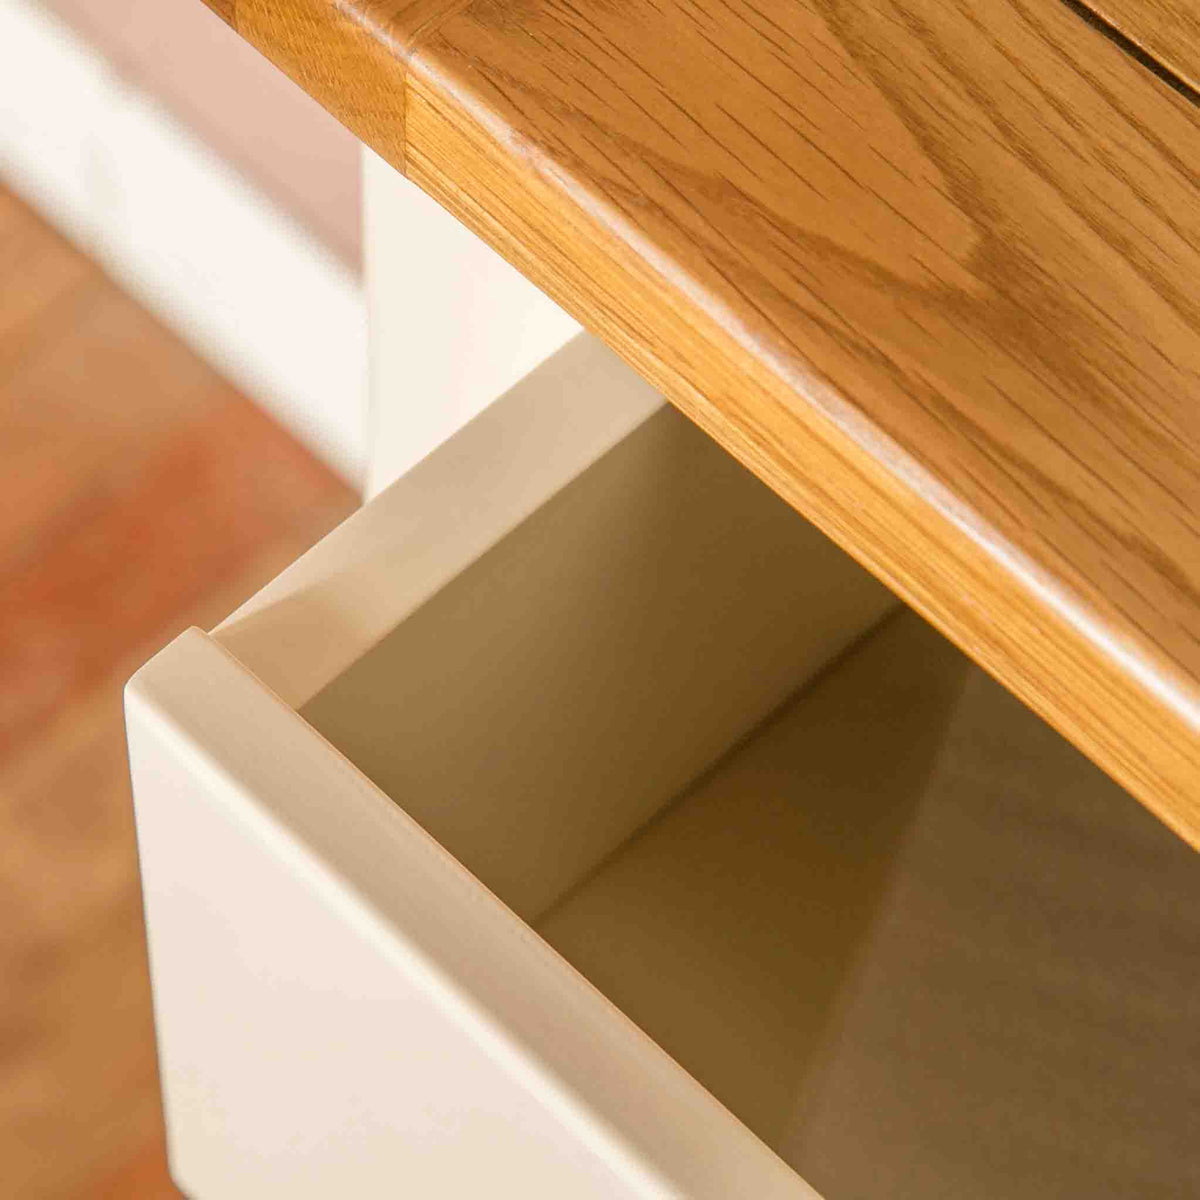 Open drawer view on The Padstow Cream Wooden Tallboy Chest of Drawers